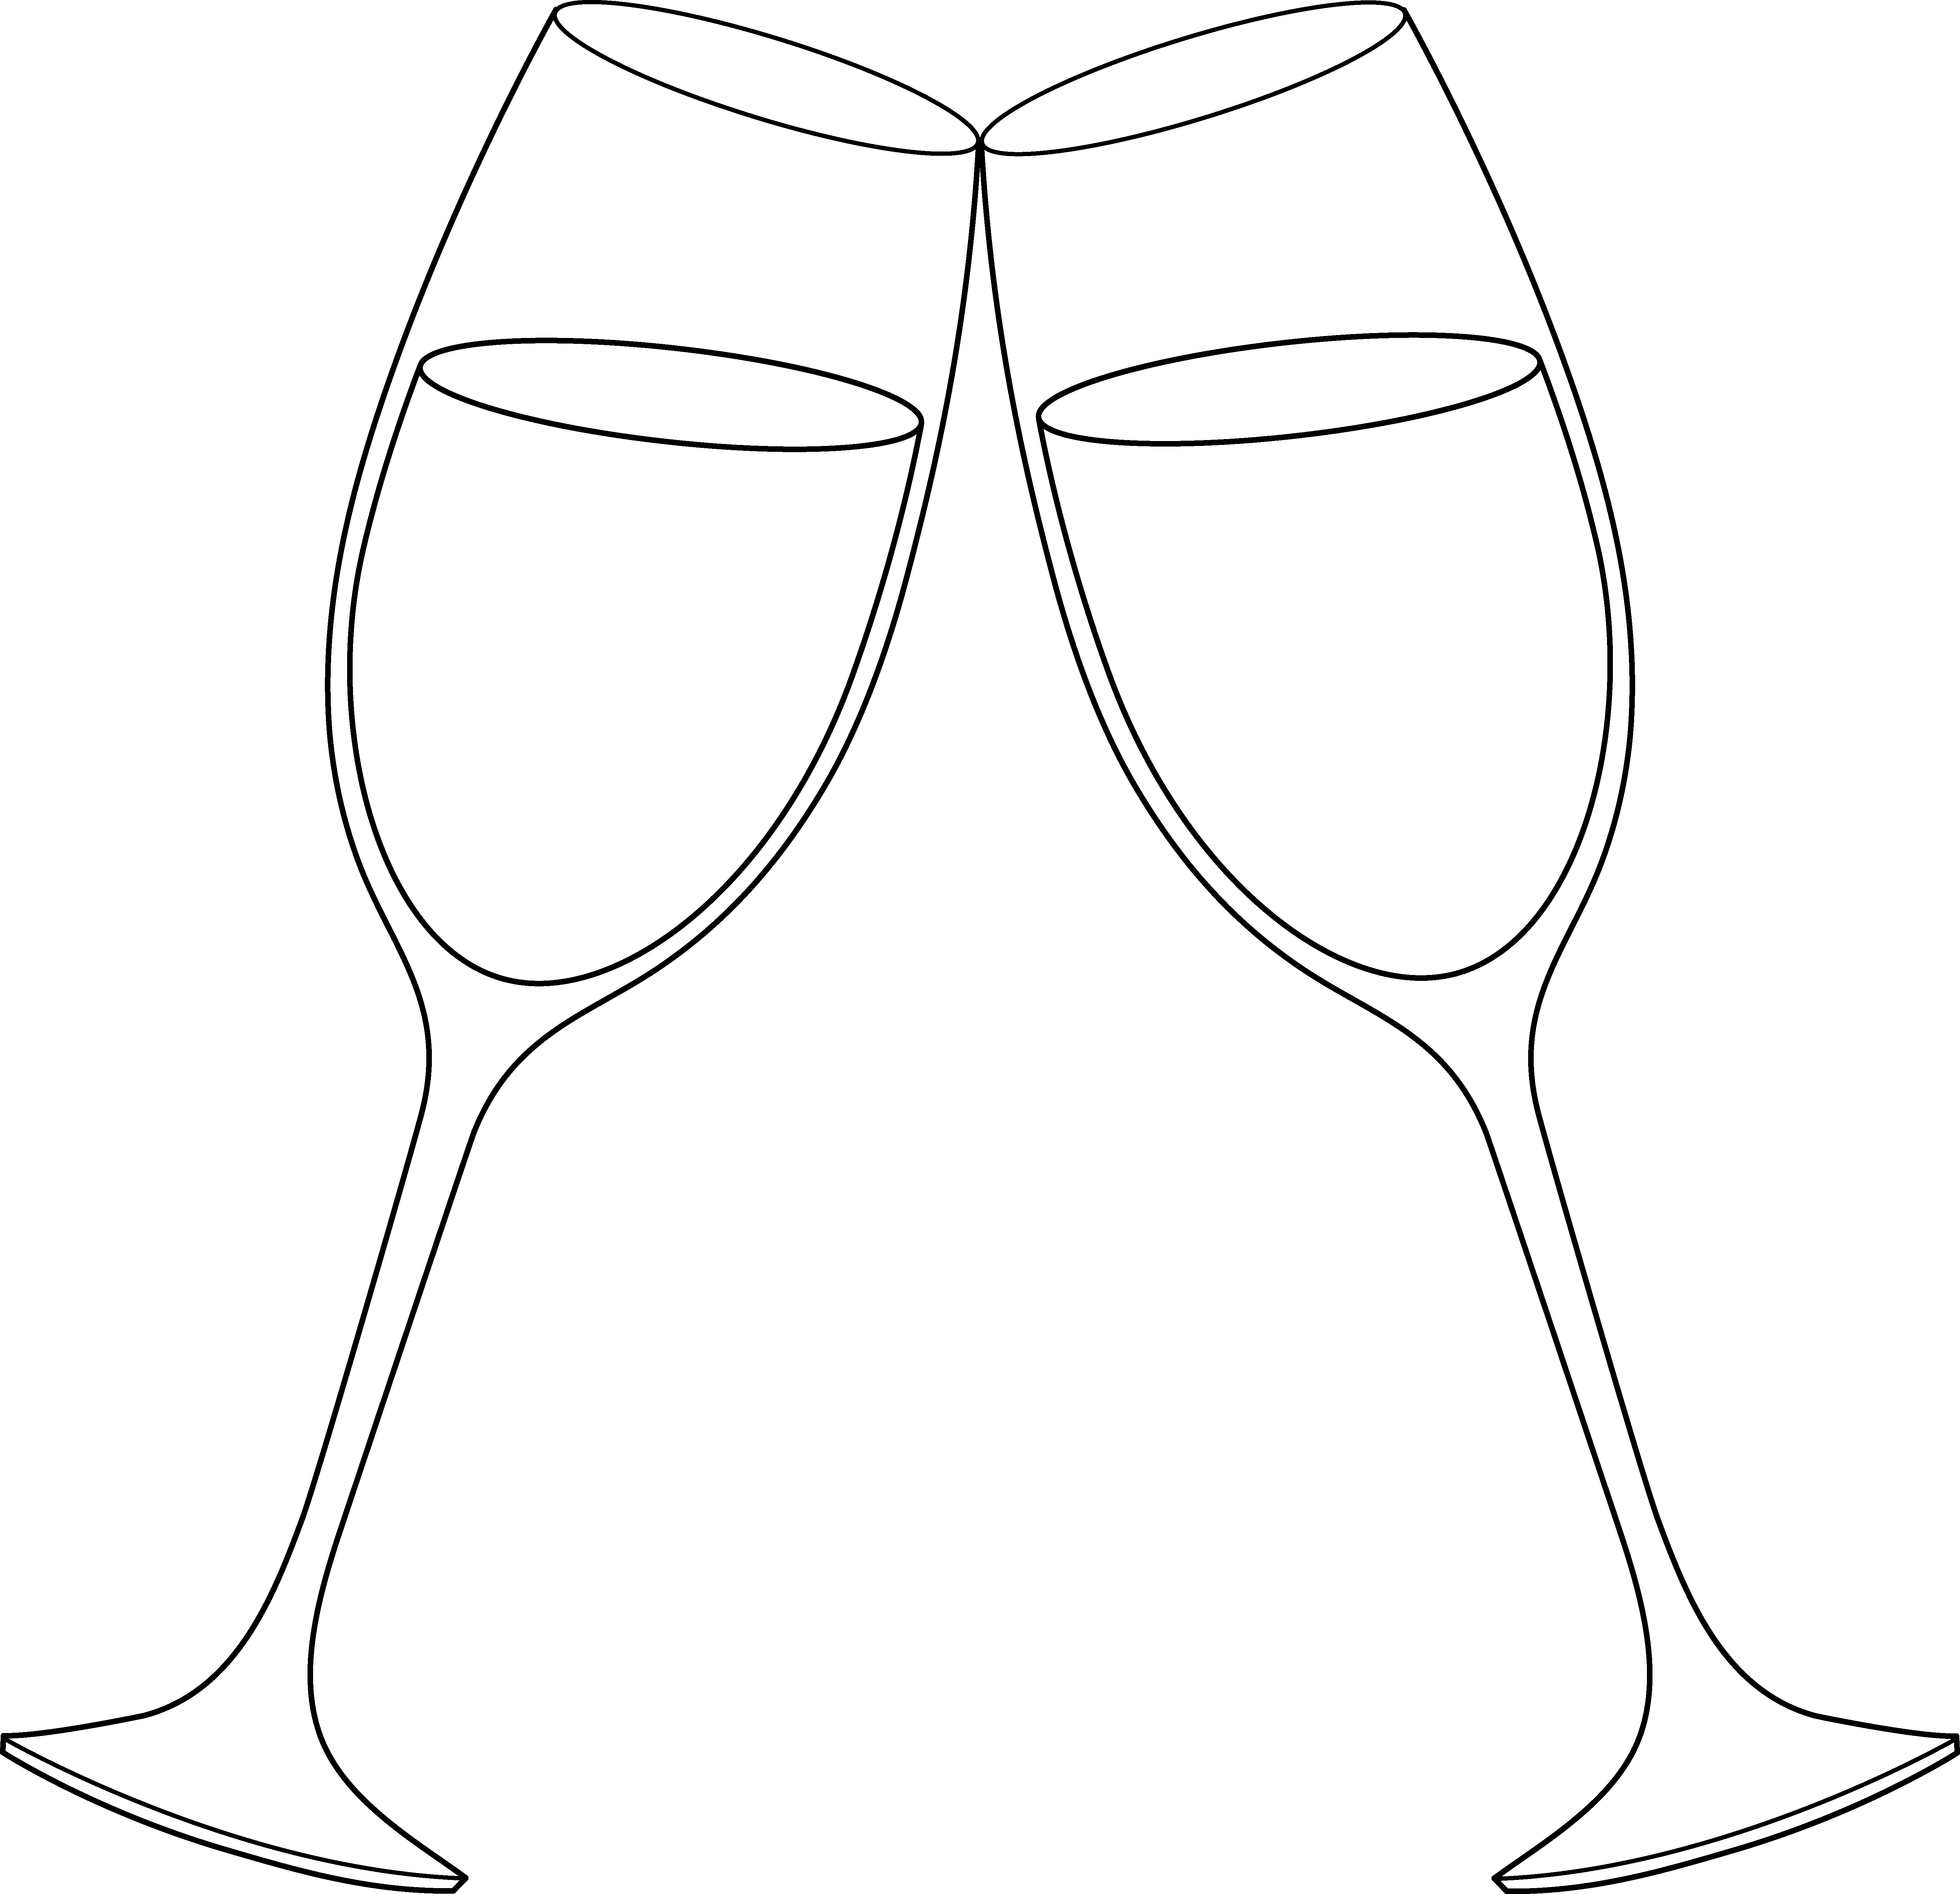 Free Champagne Glasses Clipart, Download Free Clip Art, Free.